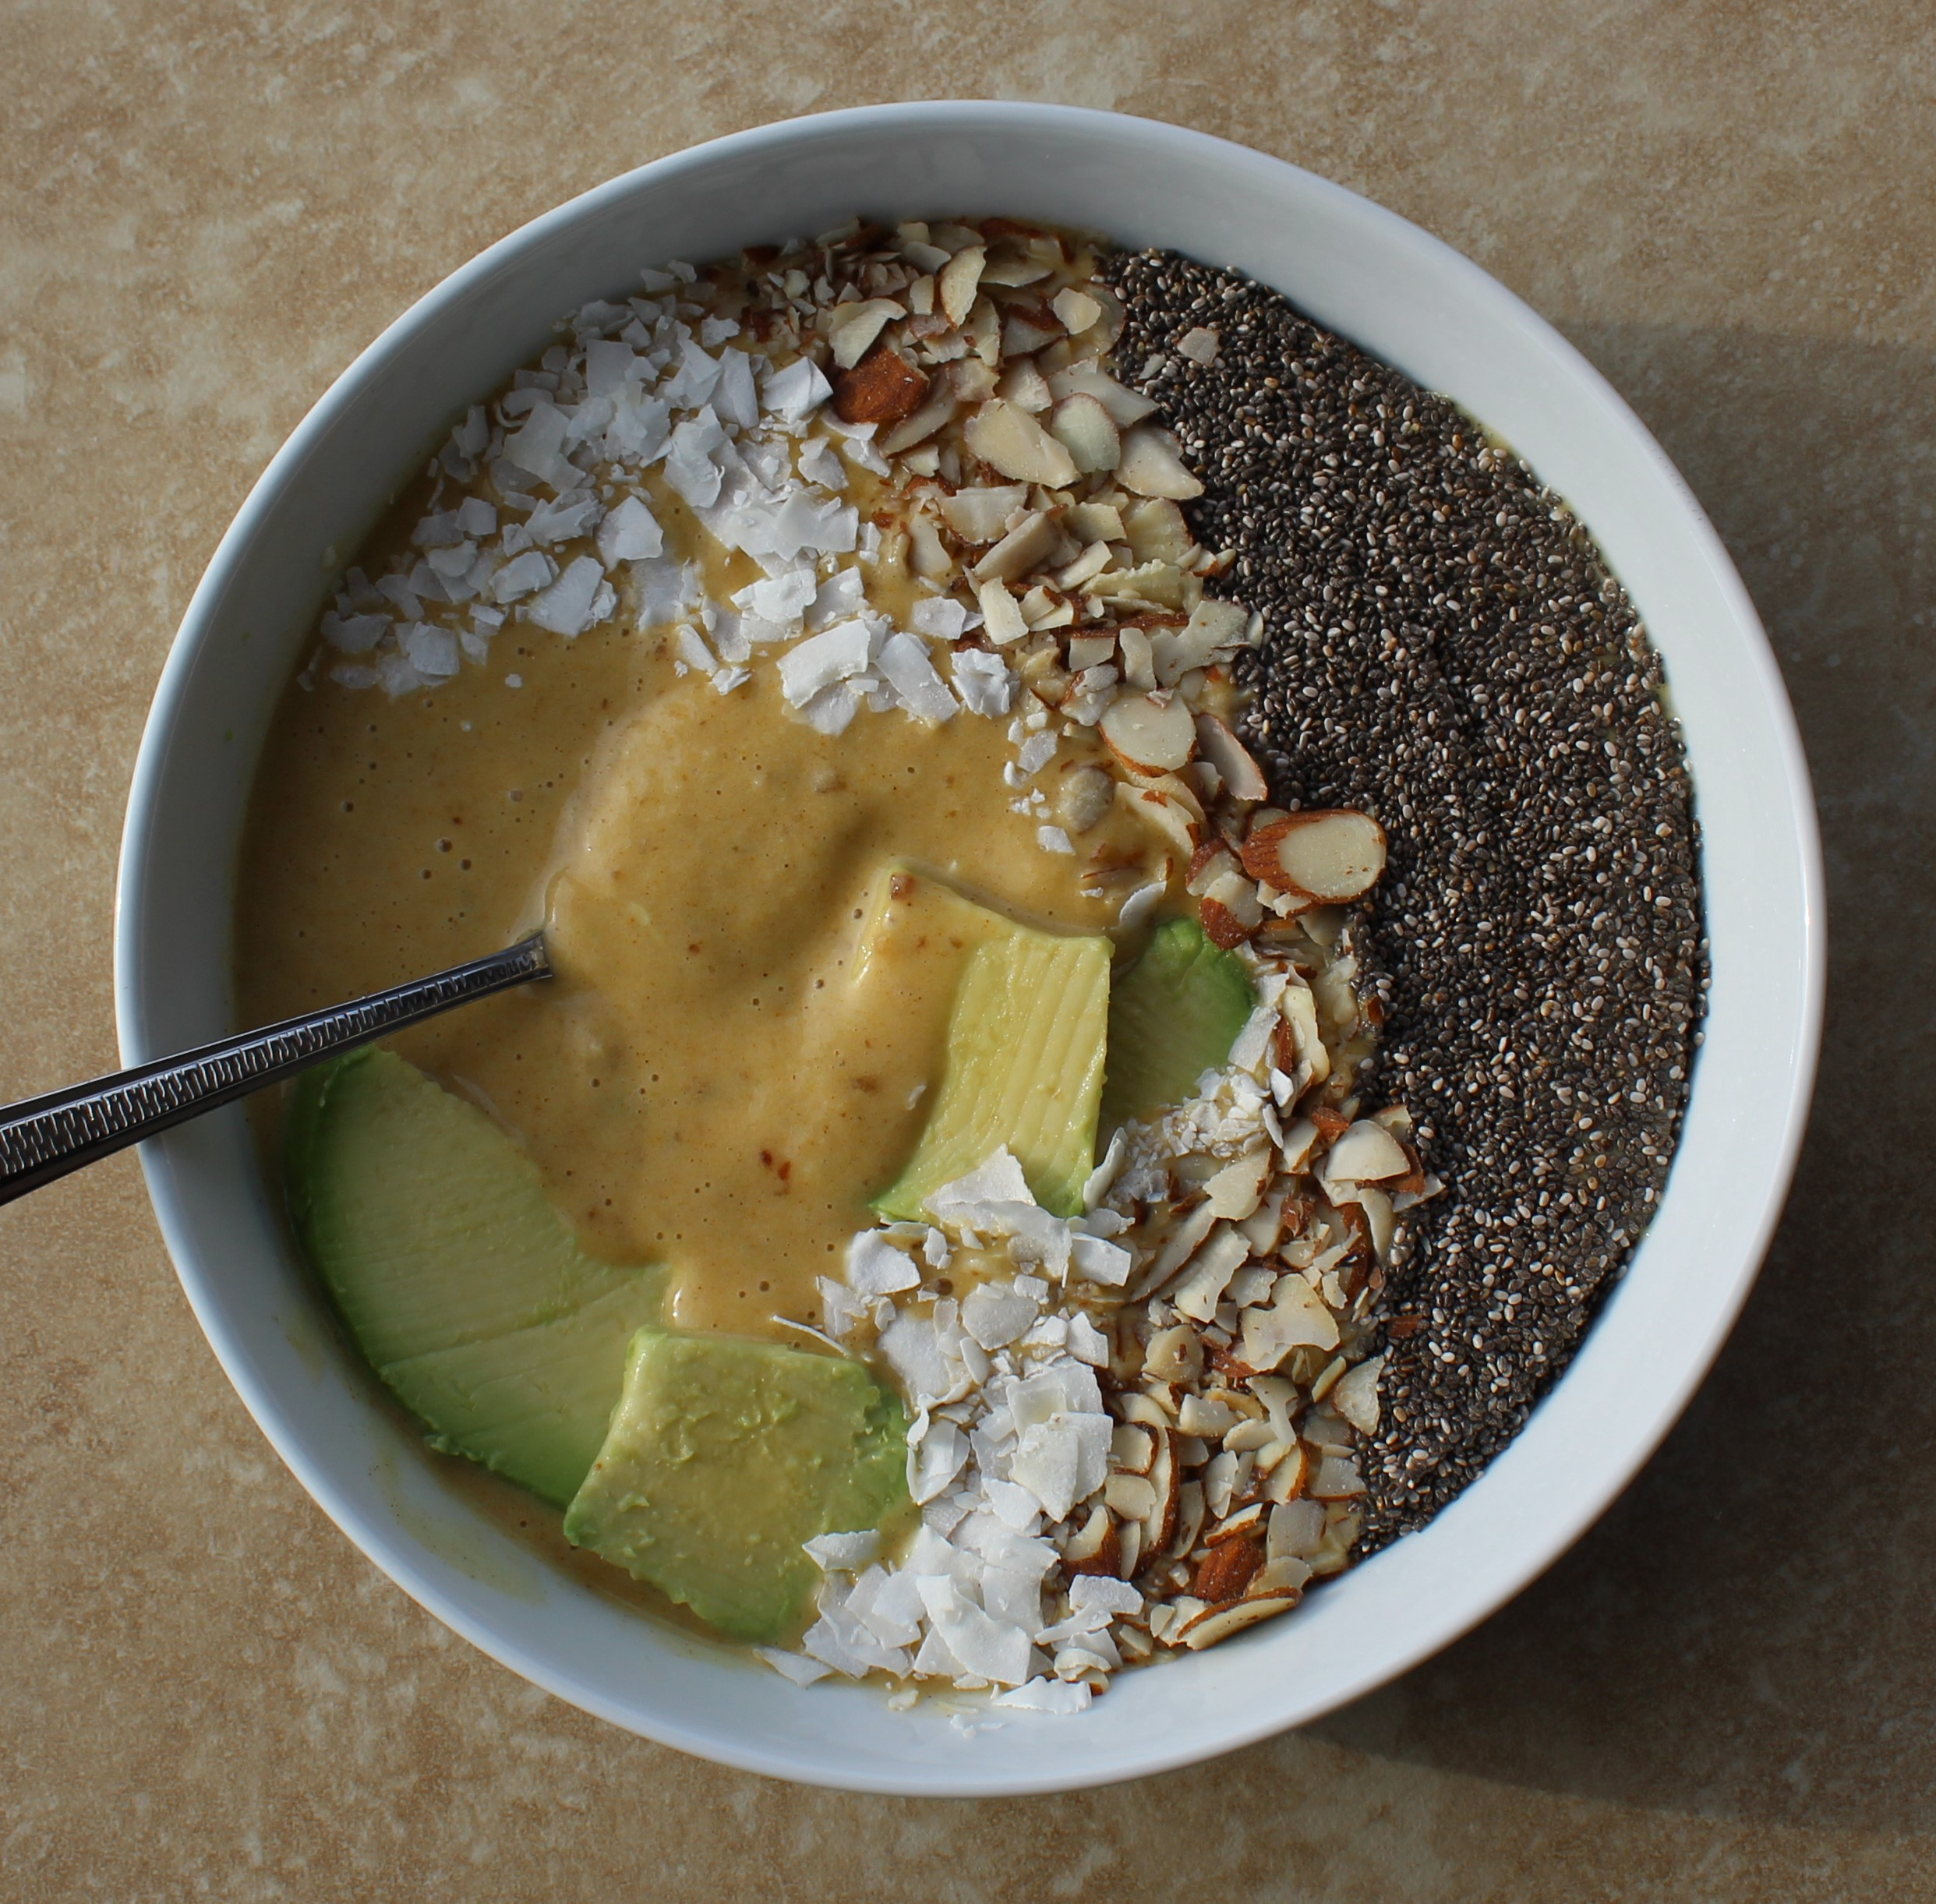 Turmeric-Kissed Date and Banana Smoothie Bowl with Sliced Avocado 2